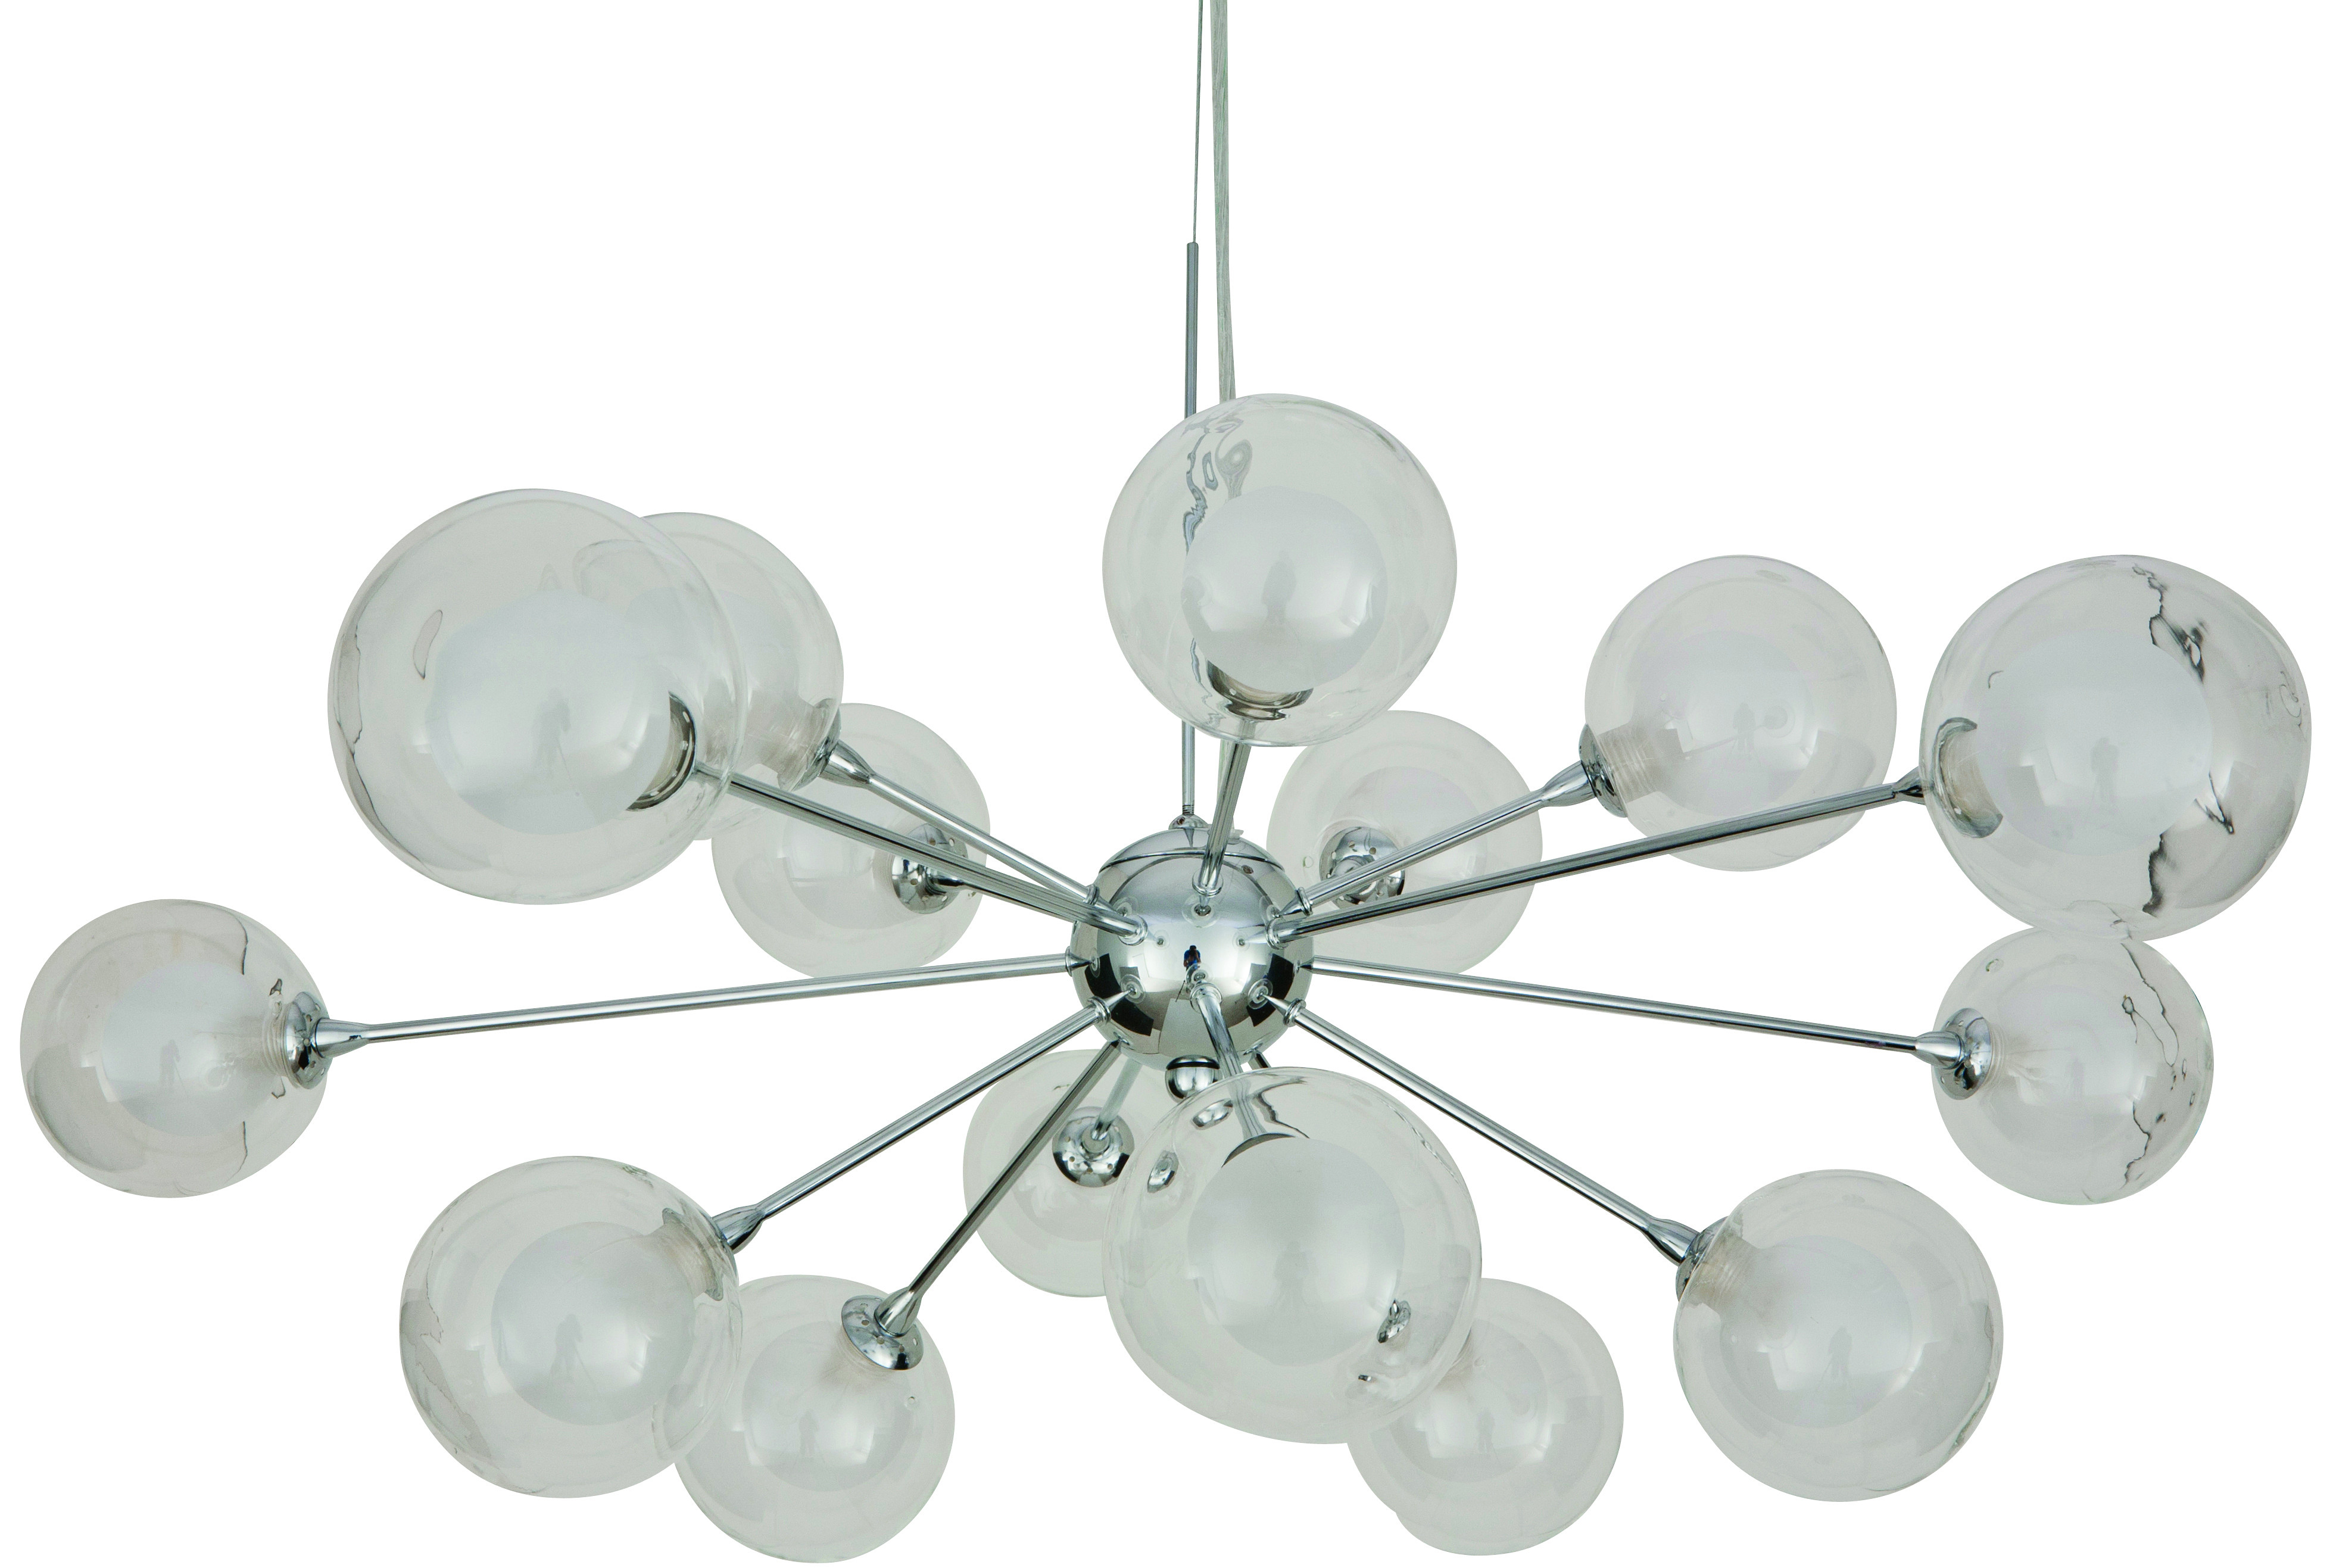 The brand new hgho129 nuevo yves pendant lamp is great for commercial and residential use